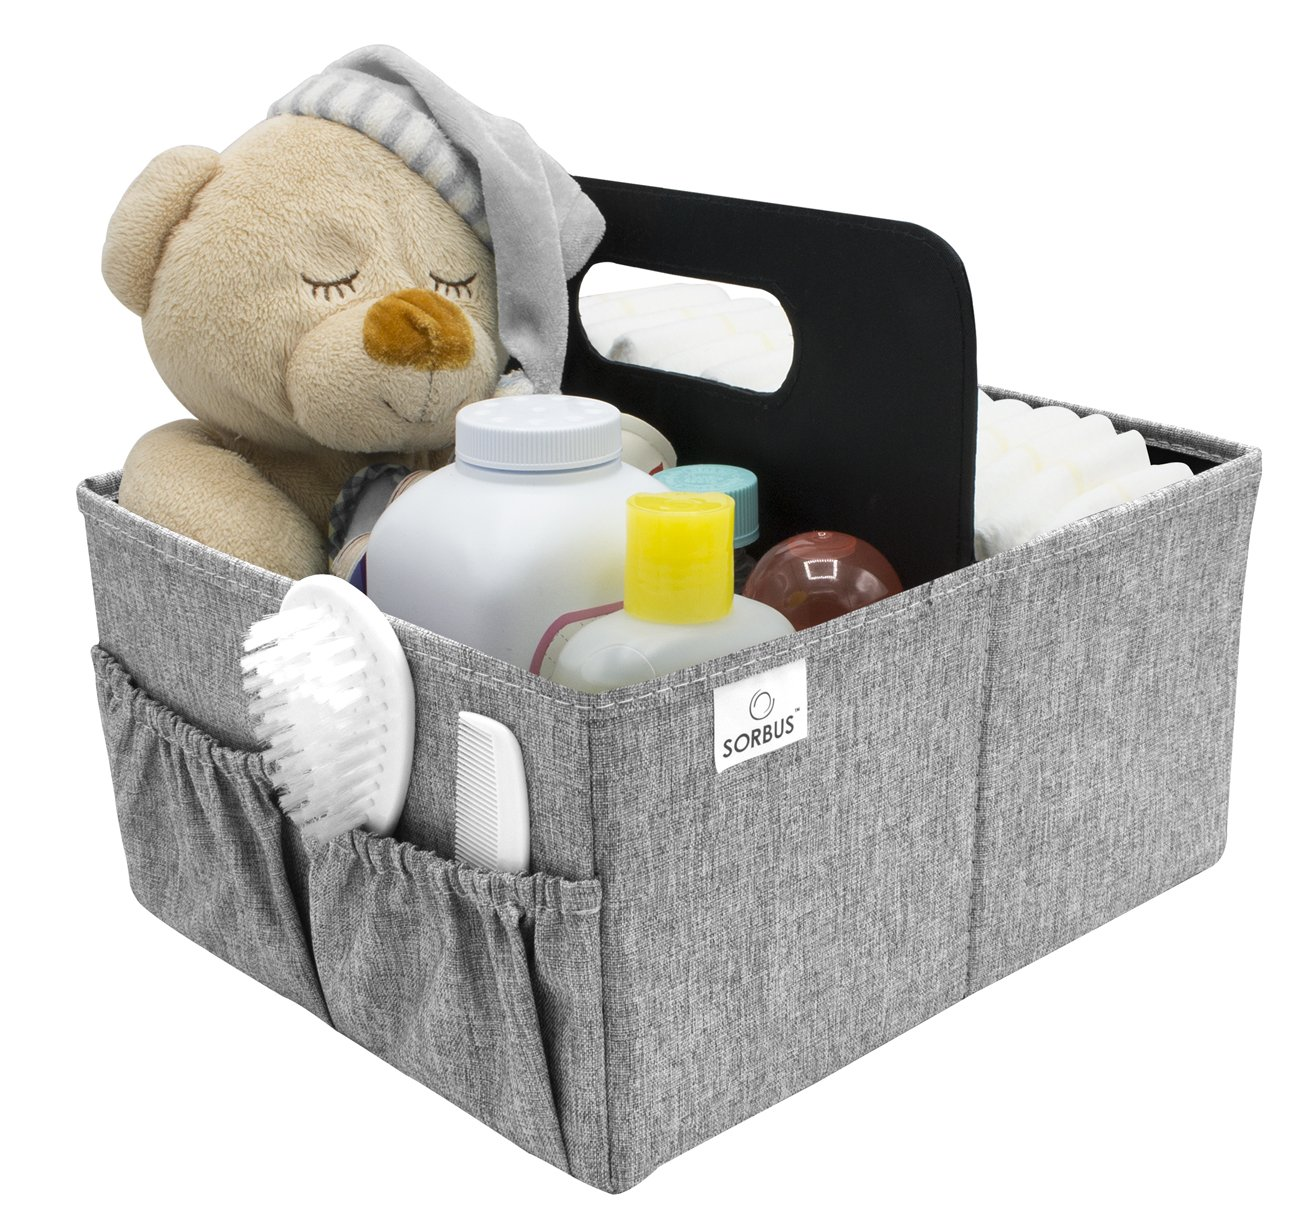 Sorbus Baby Diaper Caddy Organizer - Nursery Essentials Storage Bin for Diapers, Wipes & Toys, Newborn & Infant Portable Car Travel Storage Bag, Changing Table Organizer, Great Baby Shower Gift (Gray) by Sorbus